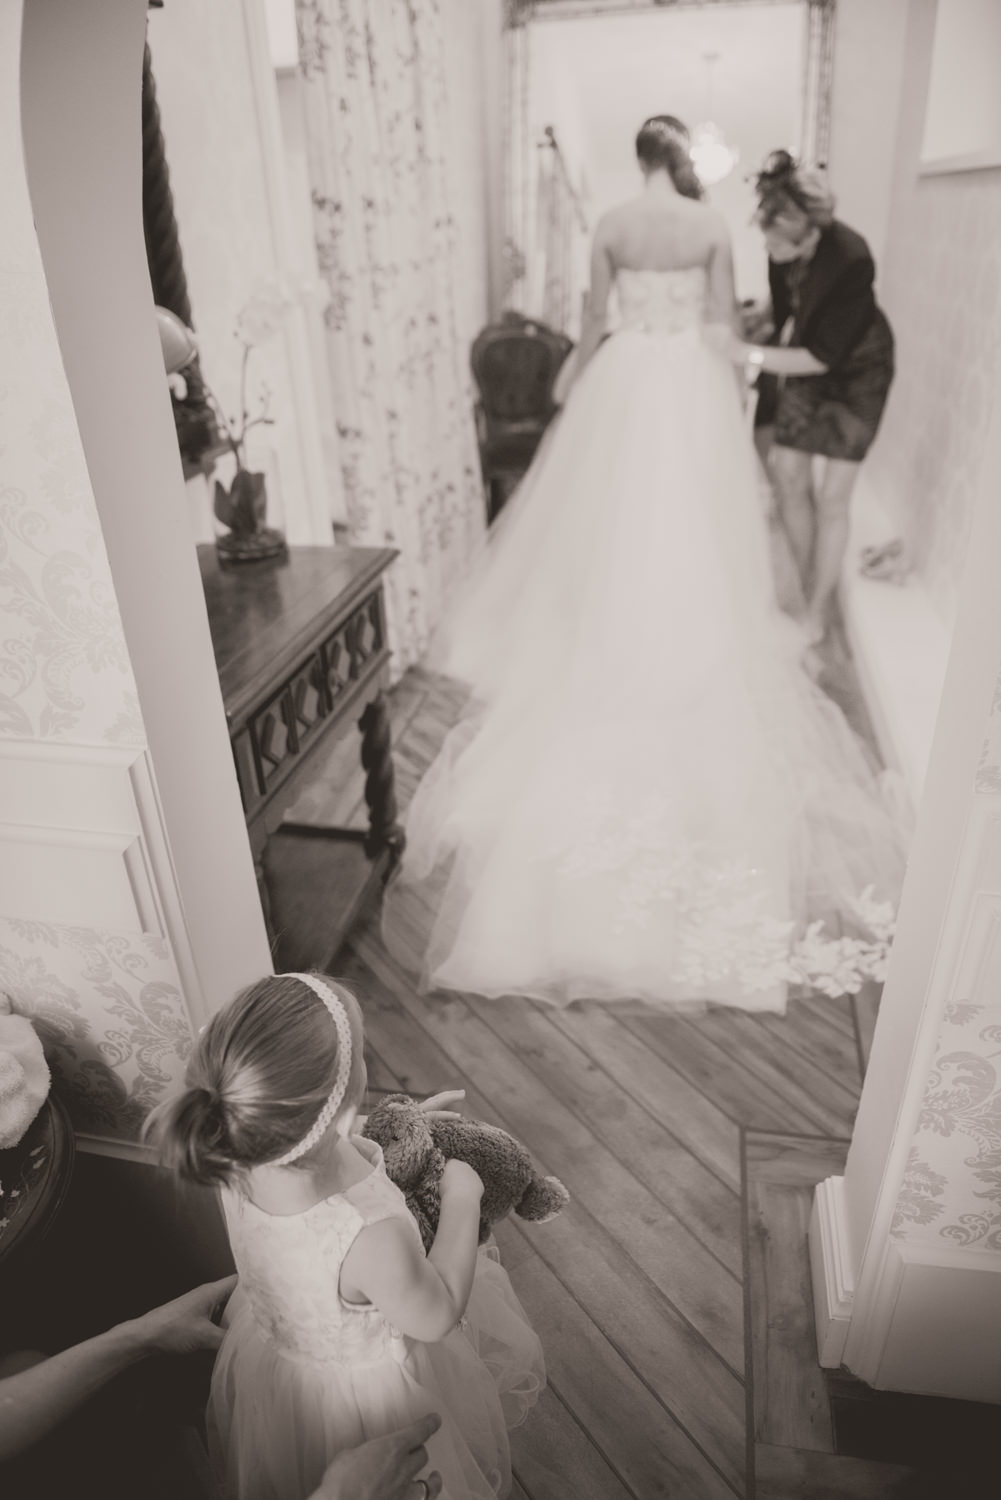 Flower girl looks at the wedding dress in awe at a wedding at Drumtochty Castle